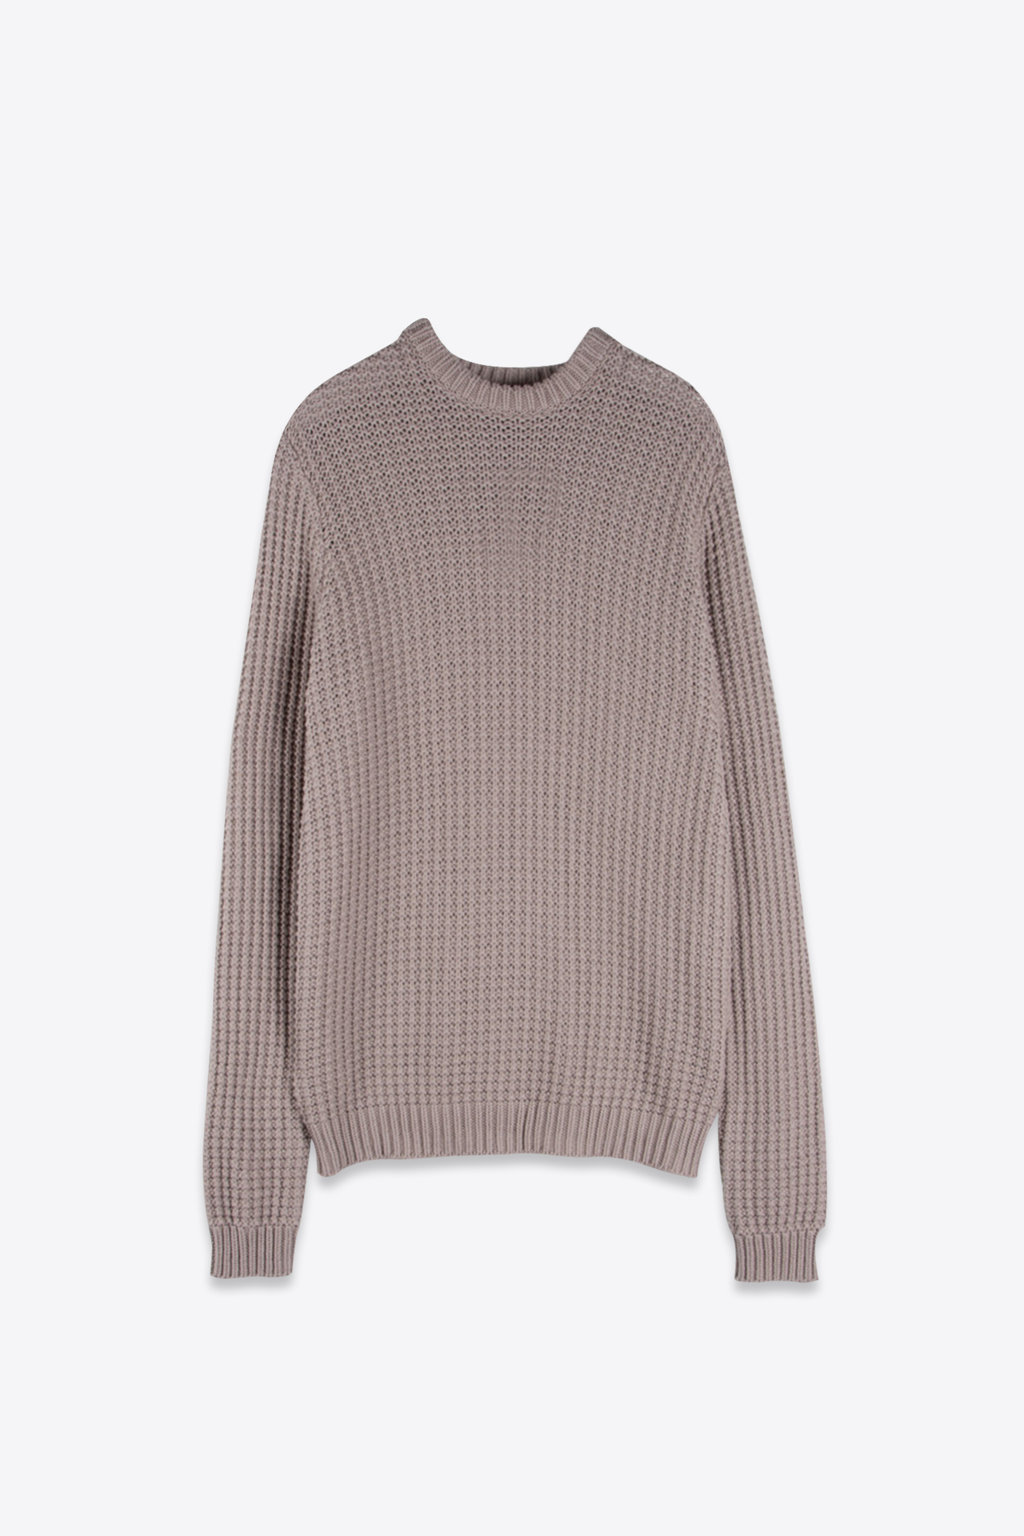 Sweater 1248 Taupe 5